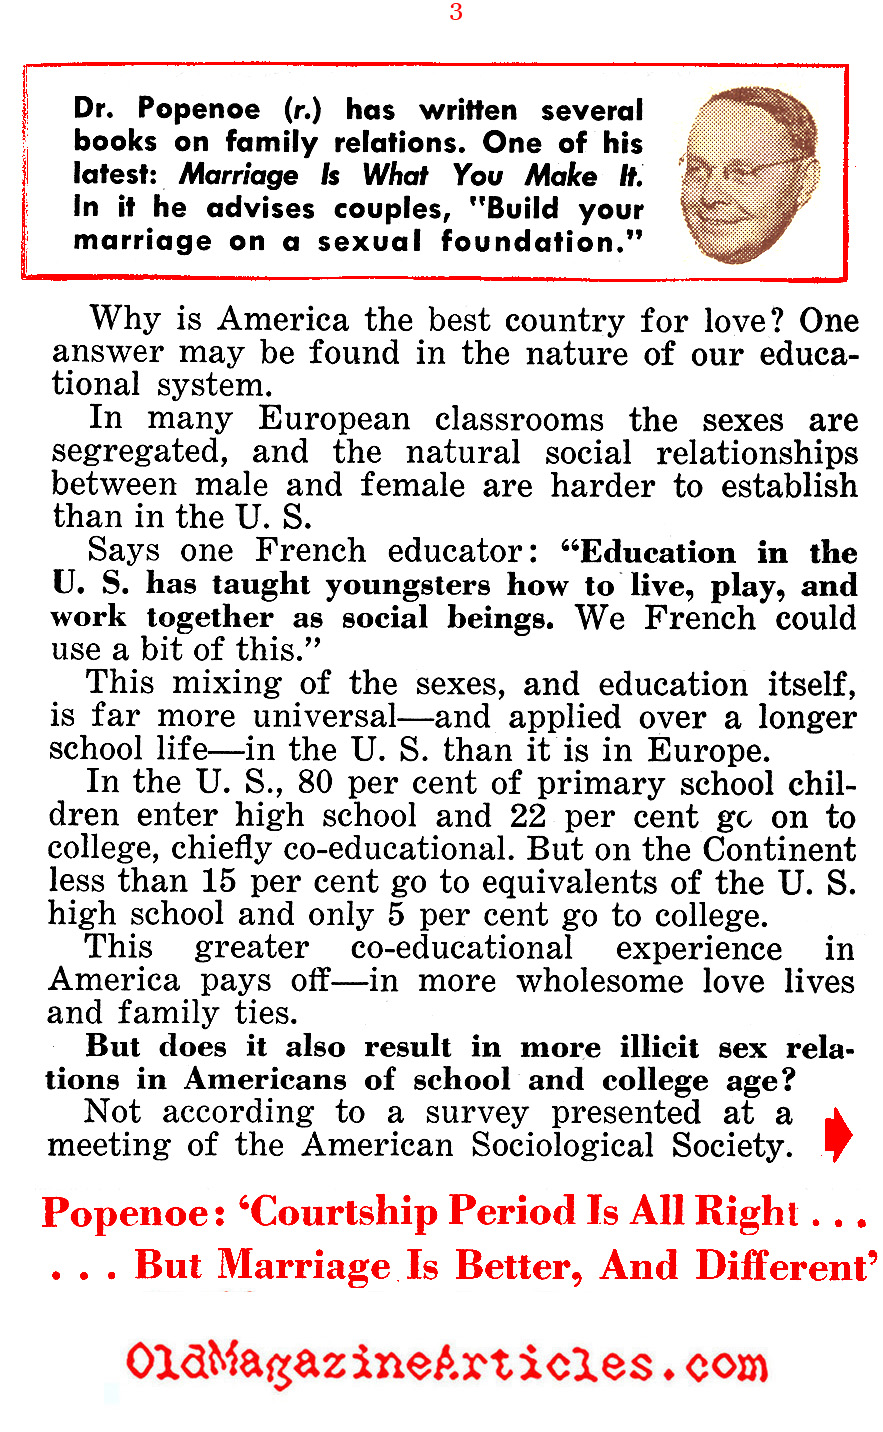 American Love is Better (People Today Magazine, 1955)